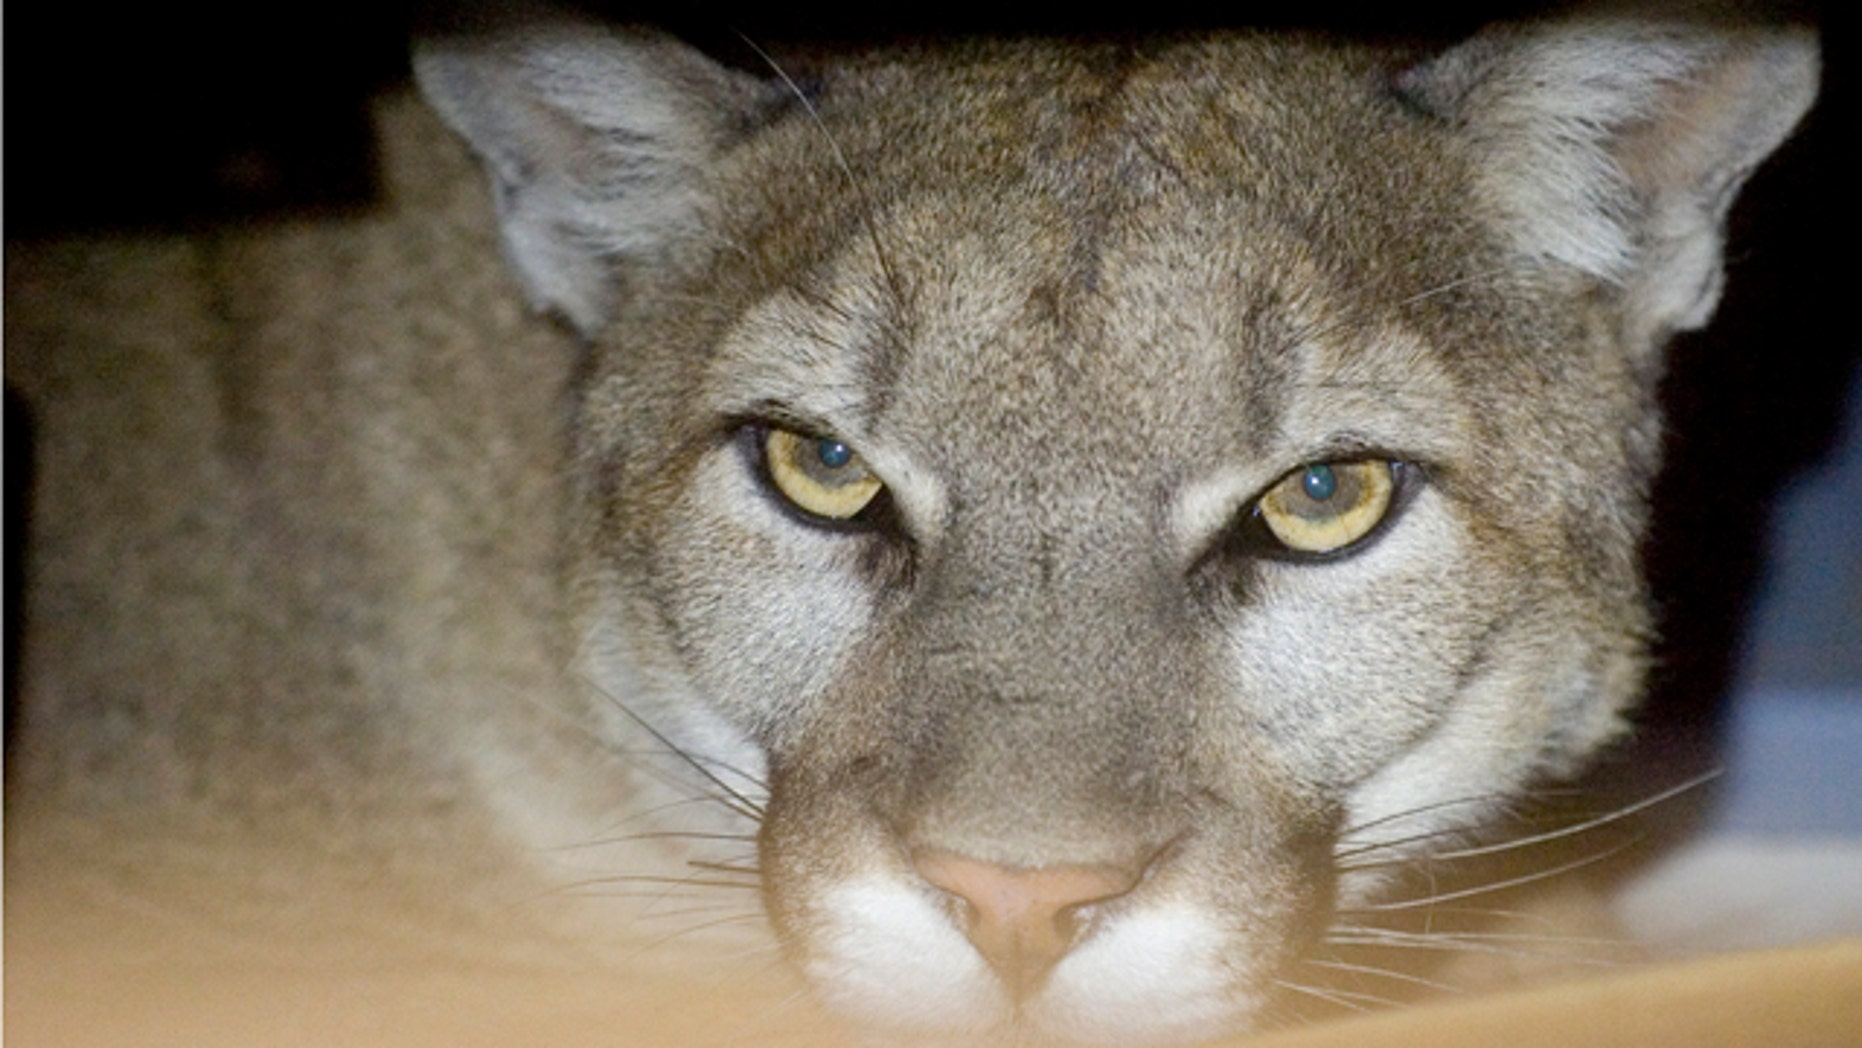 May 24: A photo provided bv the Hesperia Code Enforcement shows a mountain lion peering from his hiding place inside a family's garage in Hesperia, Calif. The mountain lion was eventually sedated by California State Fish and Game Biologists and released back into the wild. (AP/Hesperia Code Enforcement)